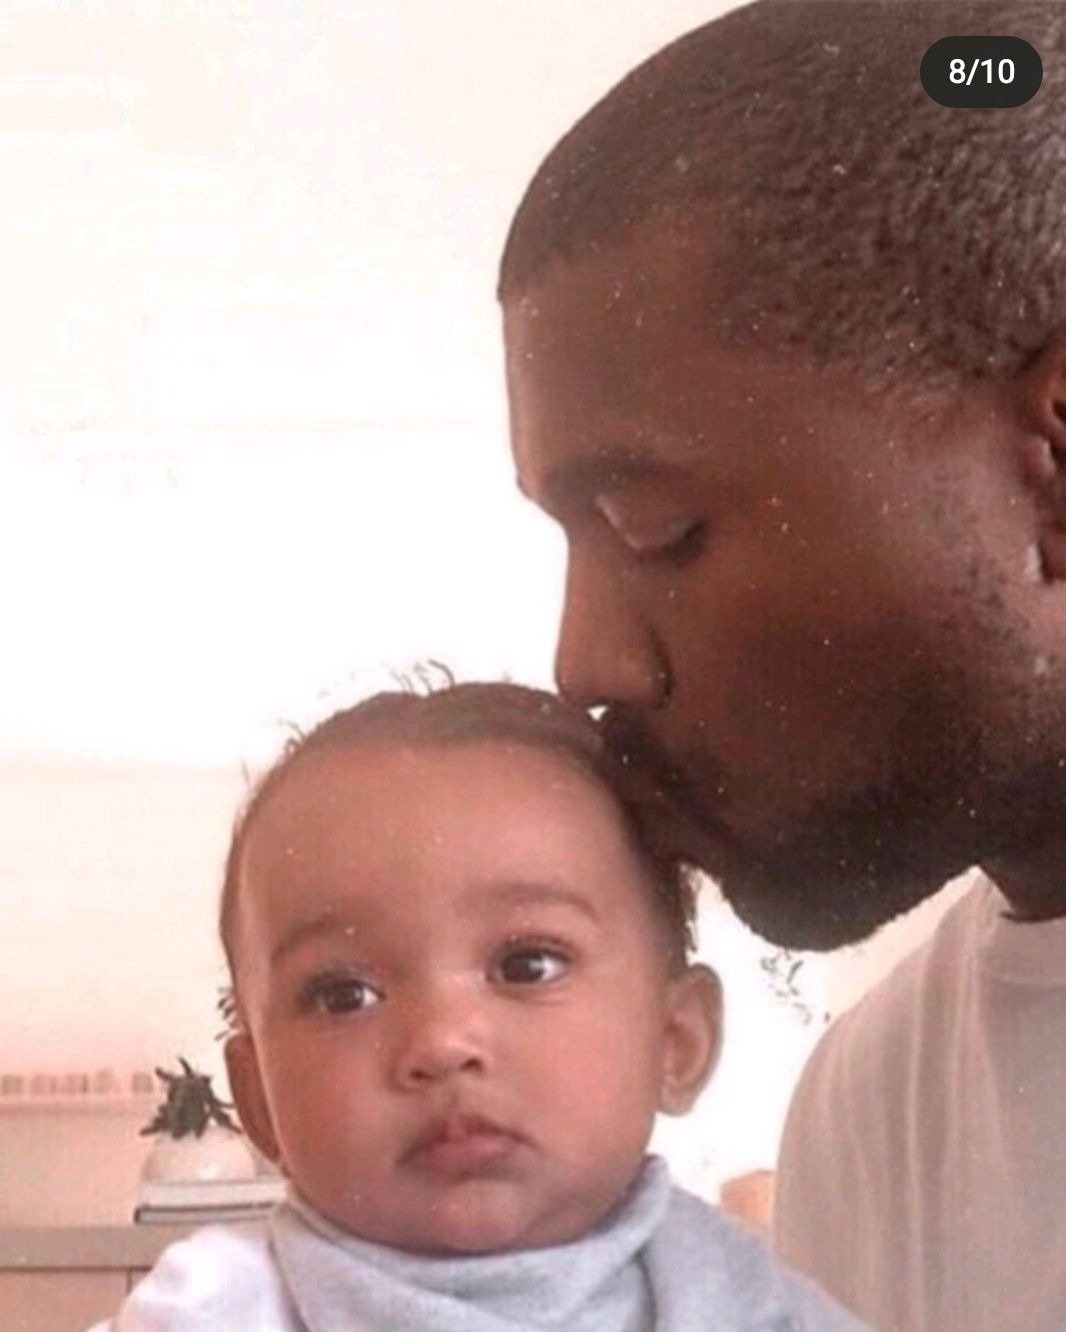 Photo of Kanye kissing his daughter, Chiicago. | Photo: Instagram / krisjenner